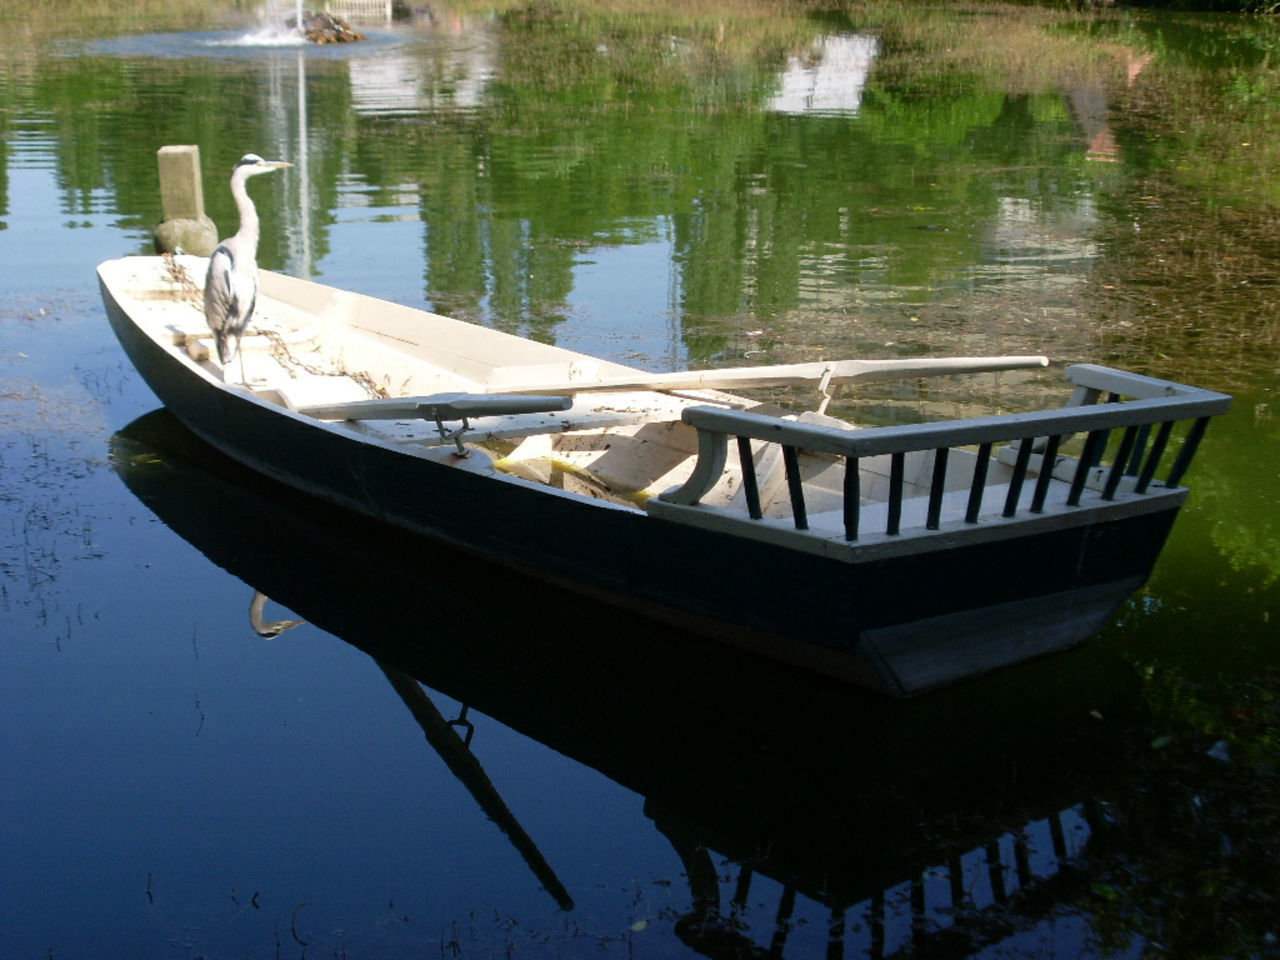 water, reflection, nautical vessel, outdoors, moored, day, nature, no people, lake, transportation, grass, beauty in nature